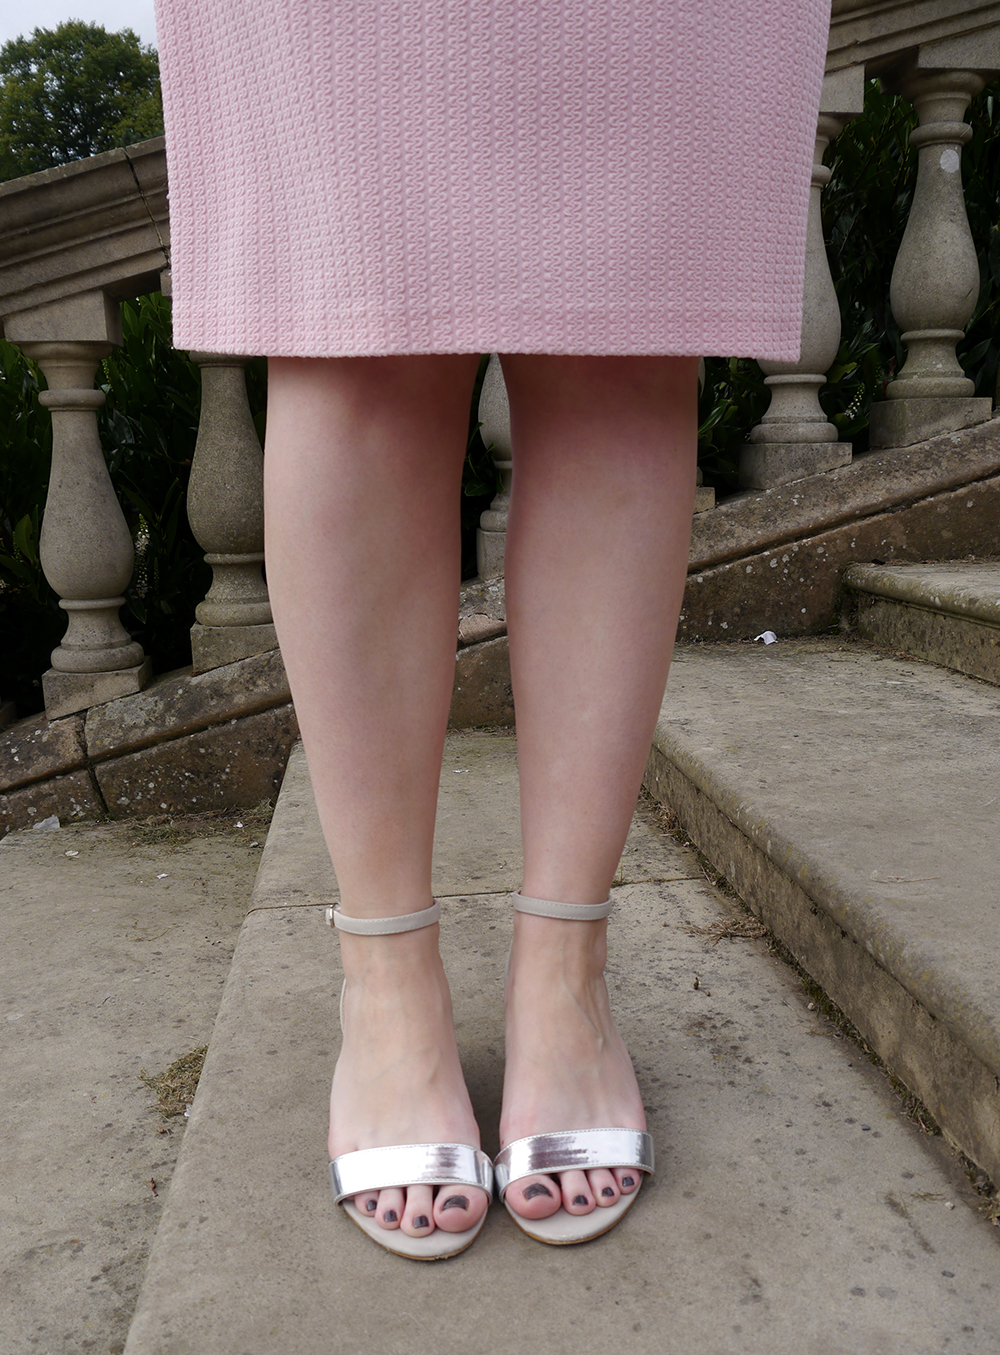 metallic strap shoes, bargain shopping in dundee, vintage weigh and pay, tips for shopping ethically and cheaply, cheap ethical fashion